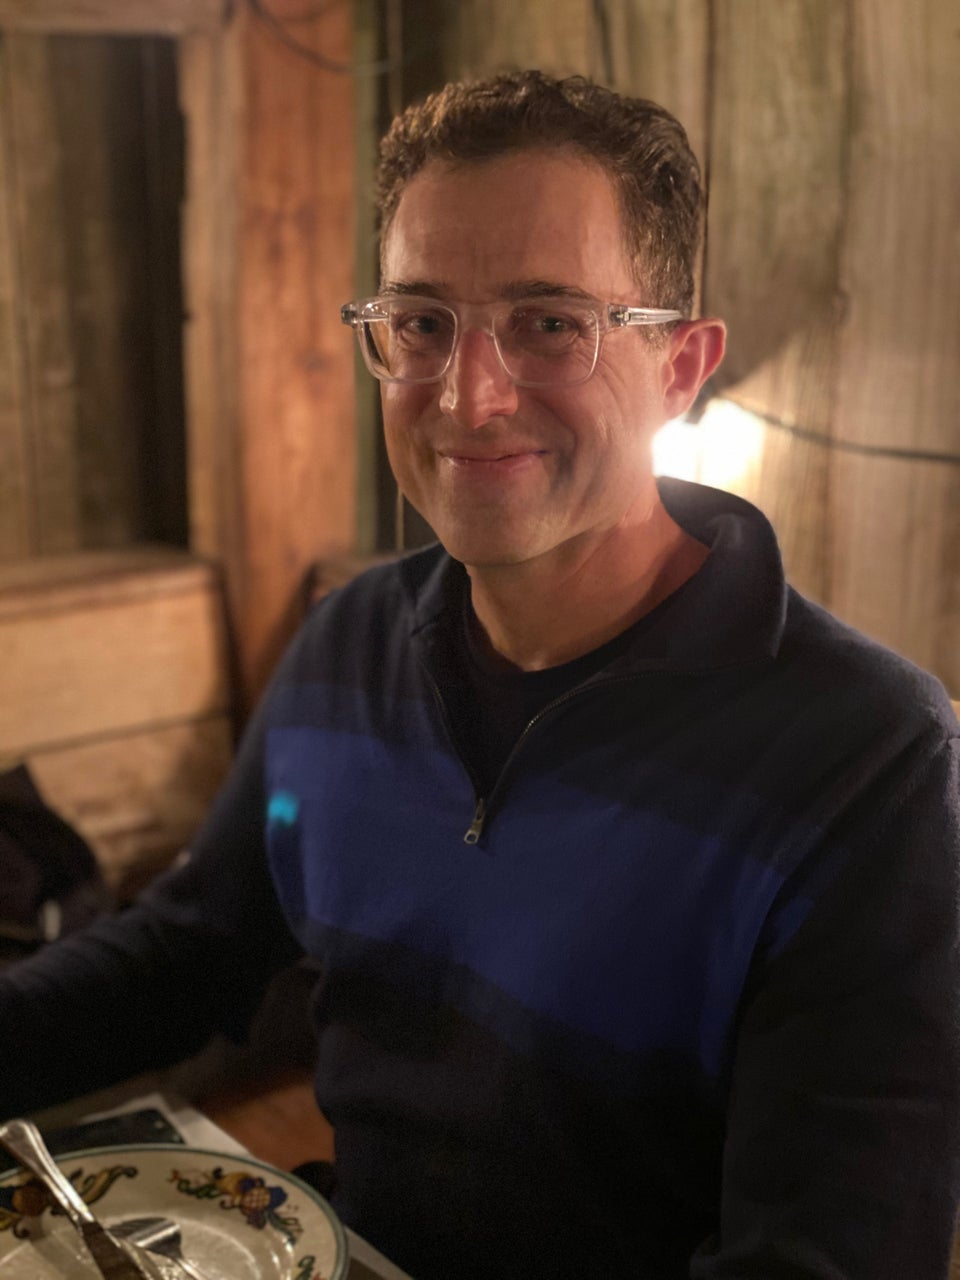 Tantek smiling in the Zazie patio in the evening, lit by lamps, wearing a half-zip dark blue sweater with a medium blue wide stripe across it.